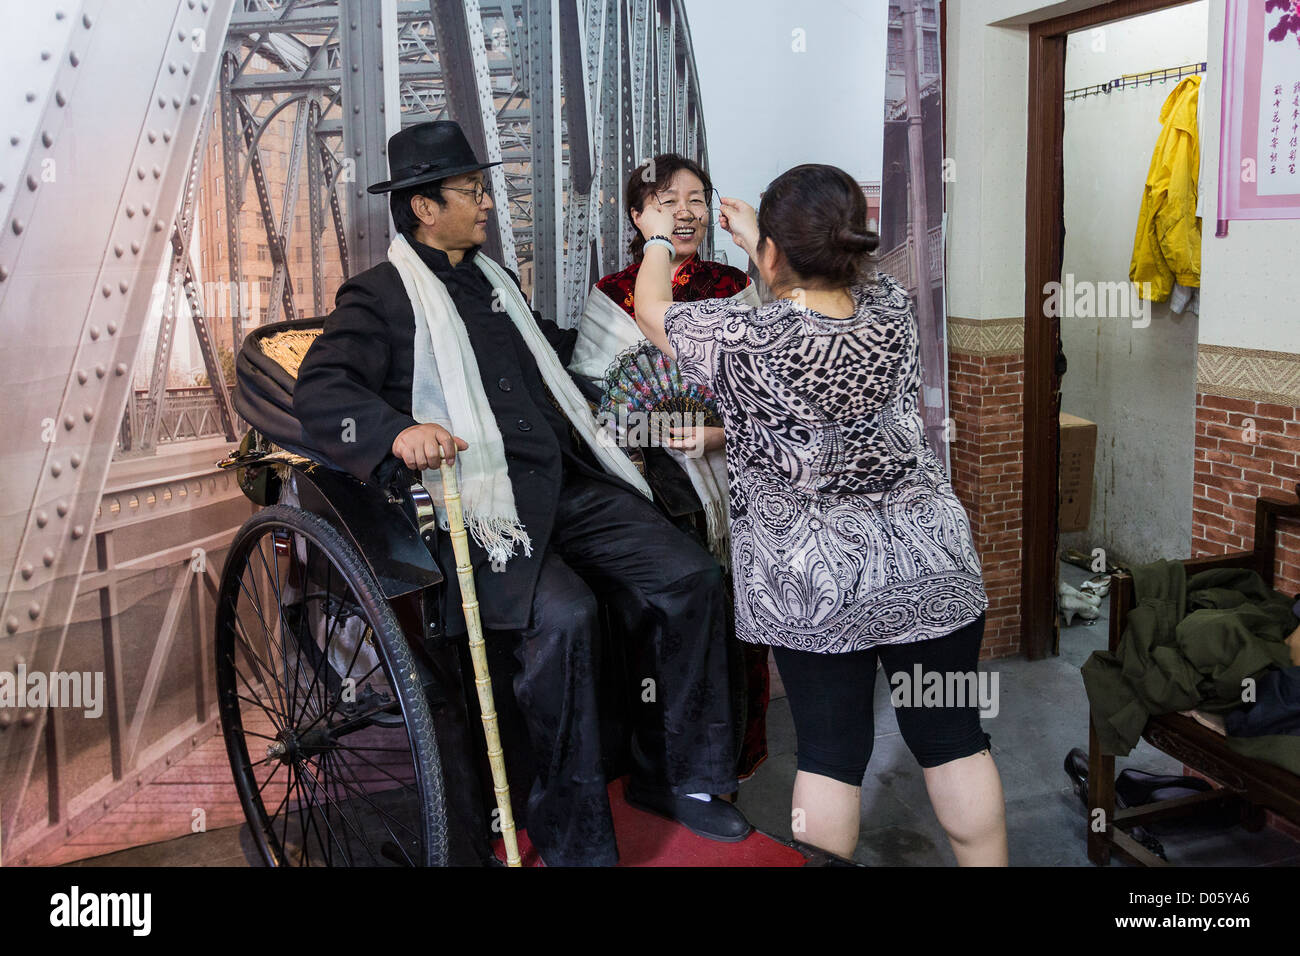 A Chinese man dresses in costume at a photo studio in Yu Gardens bazaar Shanghai, China - Stock Image